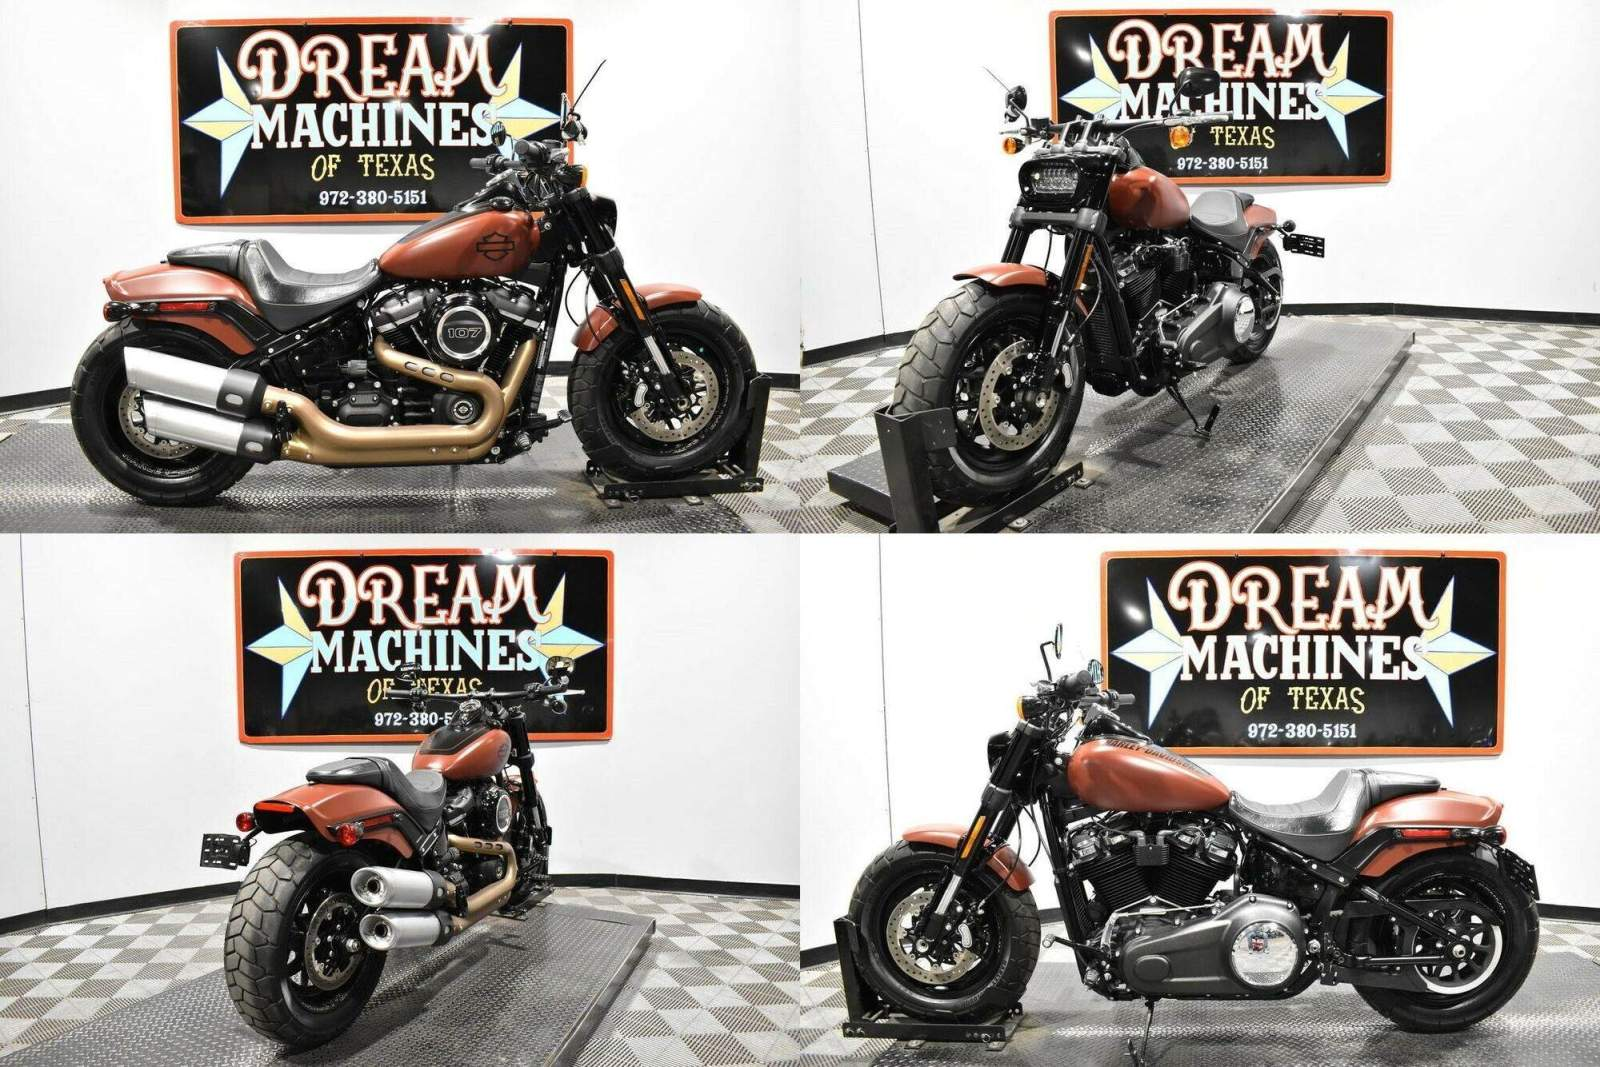 2018 Harley-Davidson FXFB - Softail Fat Bob Red used for sale